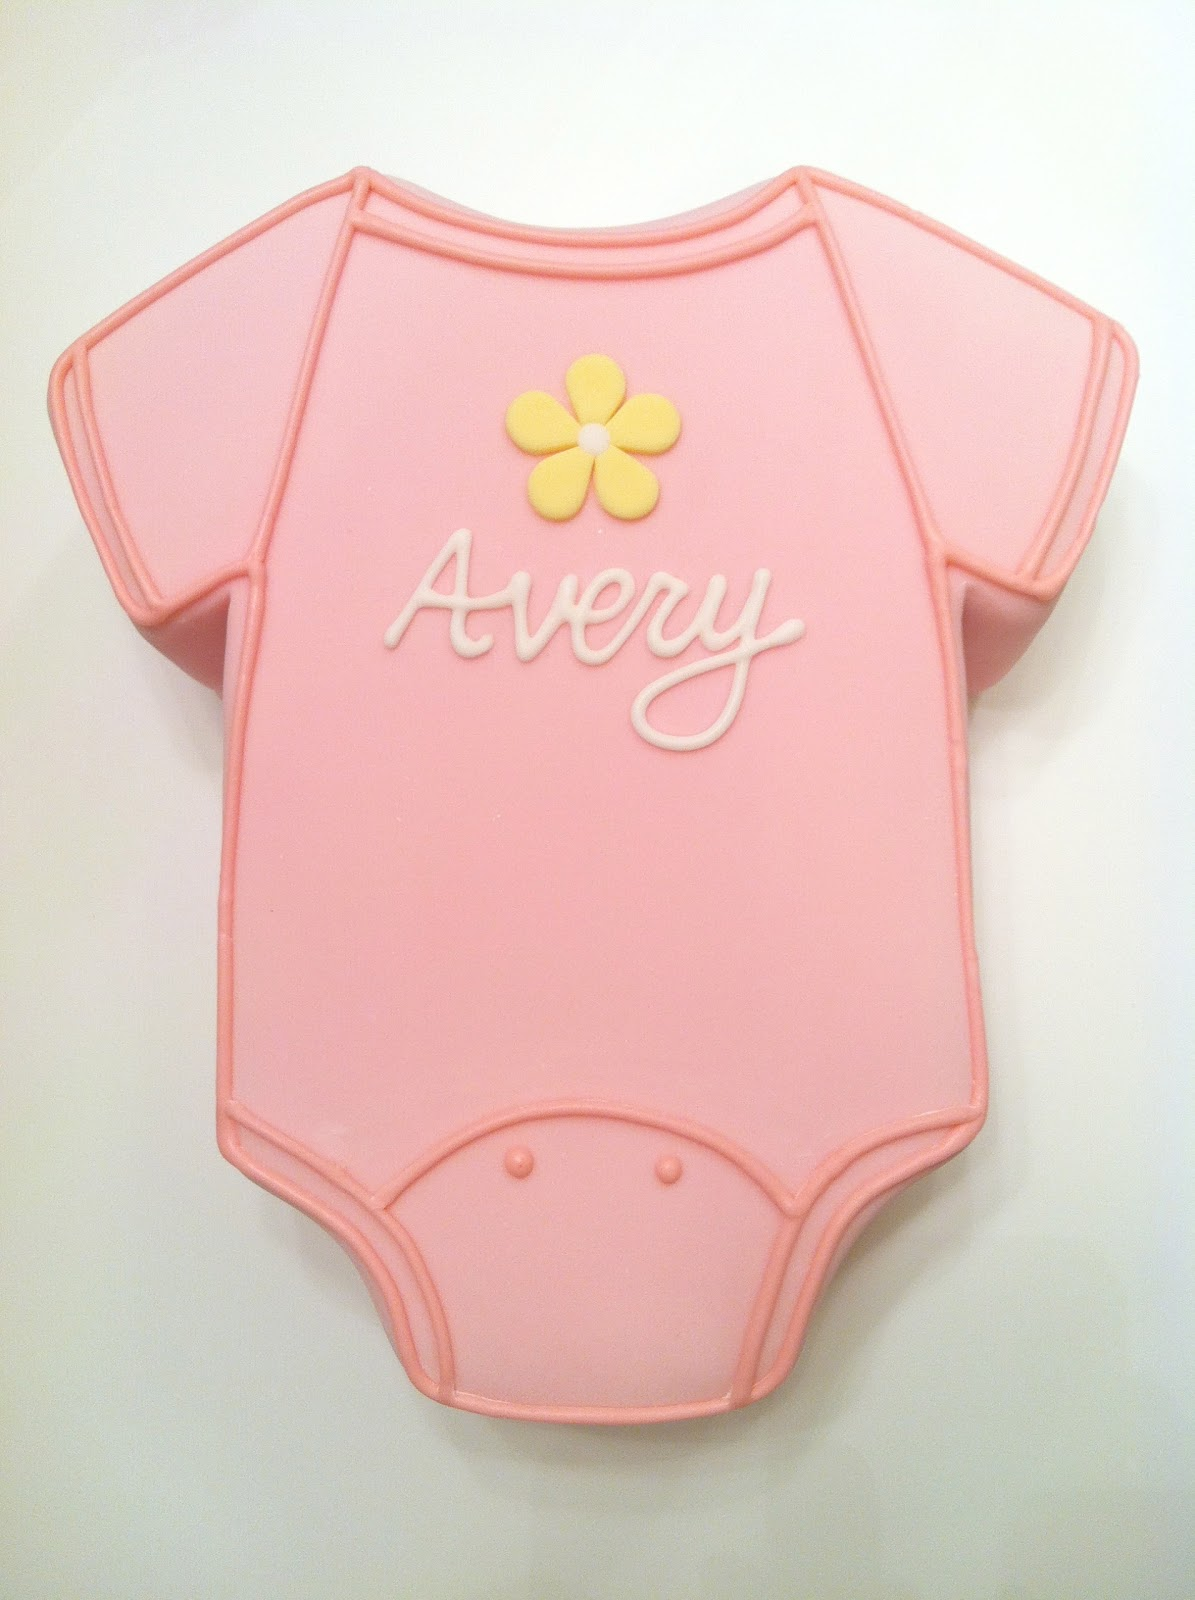 Onesie Template For Baby Shower Cake